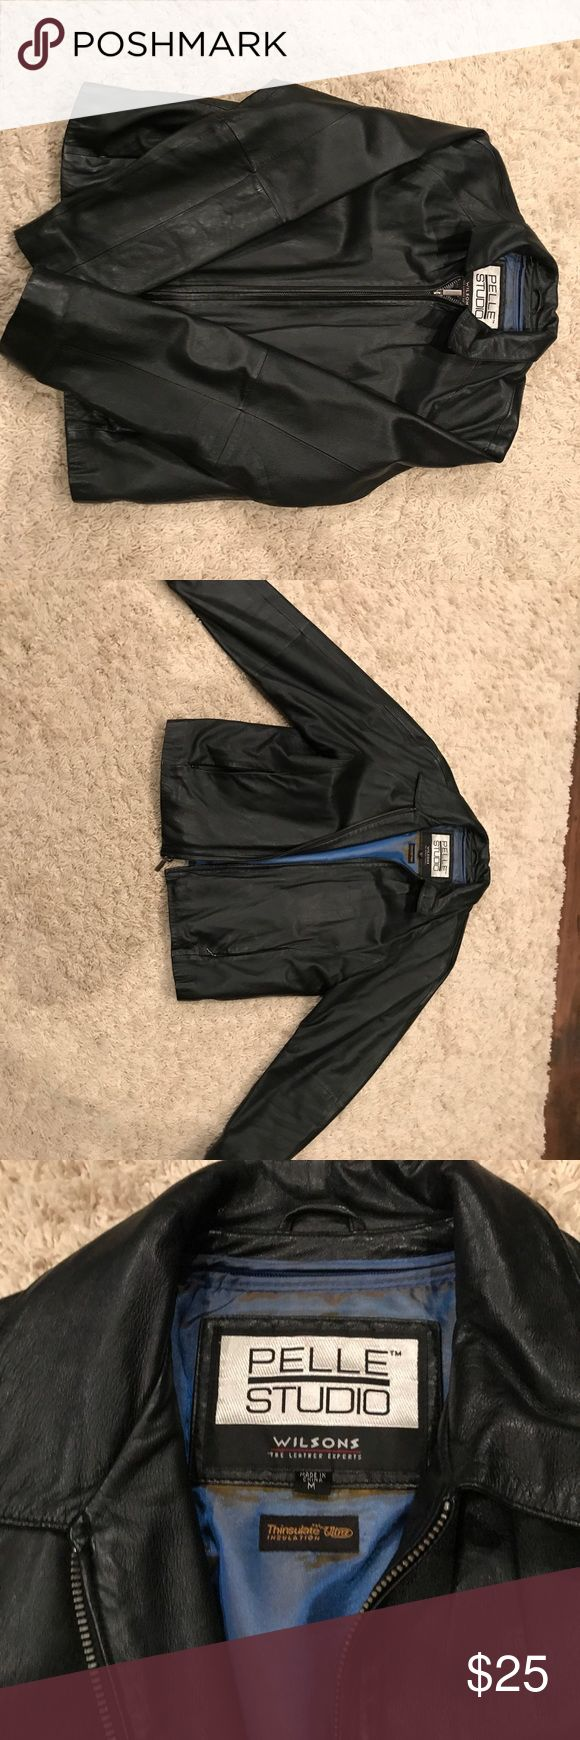 Wilsons leather mens M leather jacket pelle studio EUC Wilsons leather Pelle Studio men's medium black leather jacket. Very soft! Excellent condition! Only worn a few times on special occasions. Pelle Studio Jackets & Coats